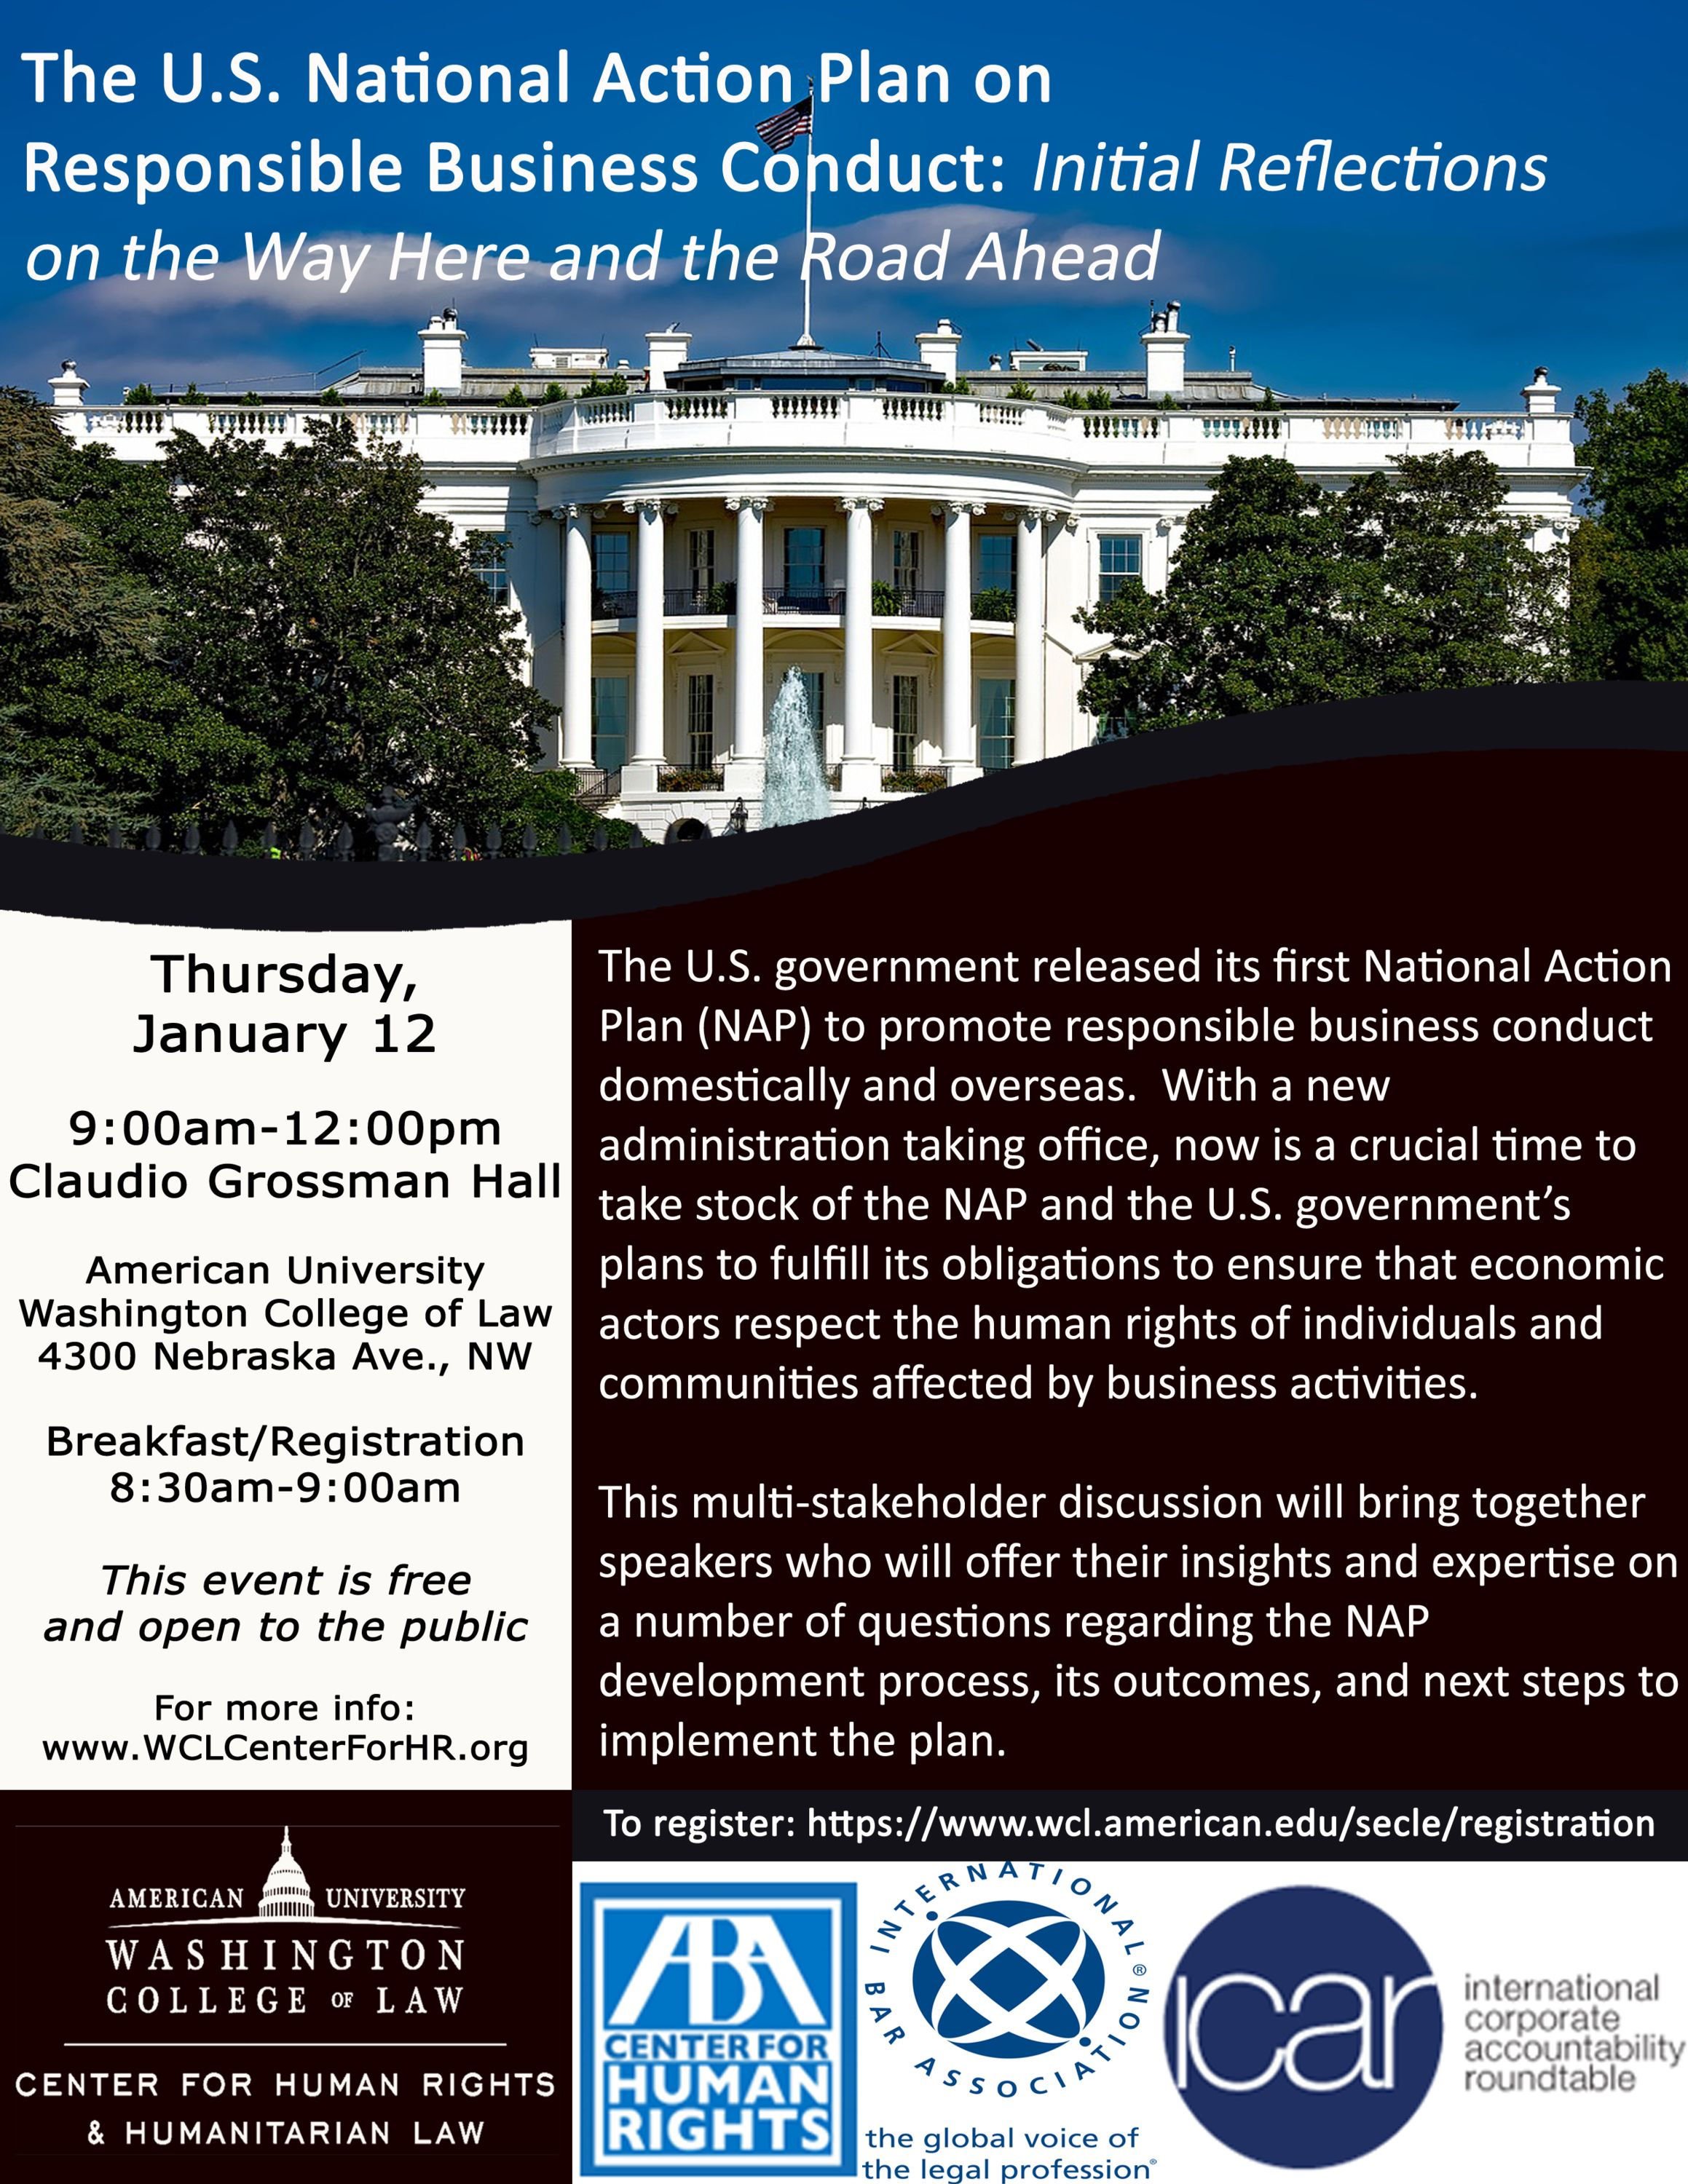 The U.S. National Action Plan on Responsible Business Conduct: Initial Reflections on the Way Here and the Road Ahead